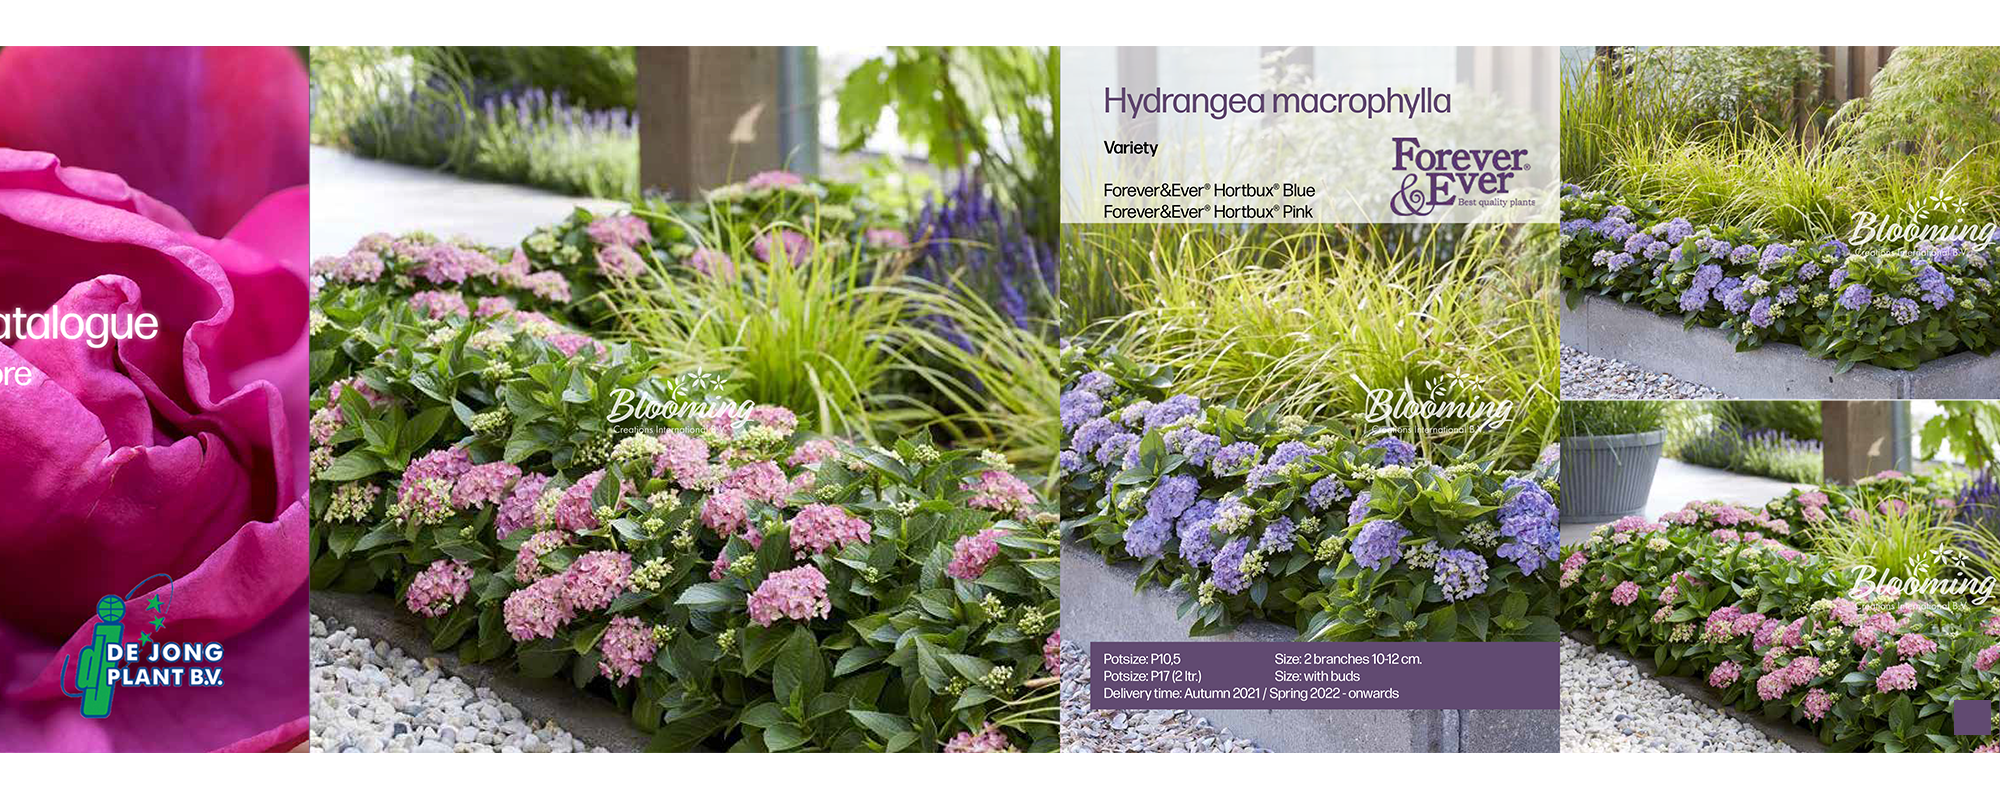 Catalogue, brochure, print, plant images photo